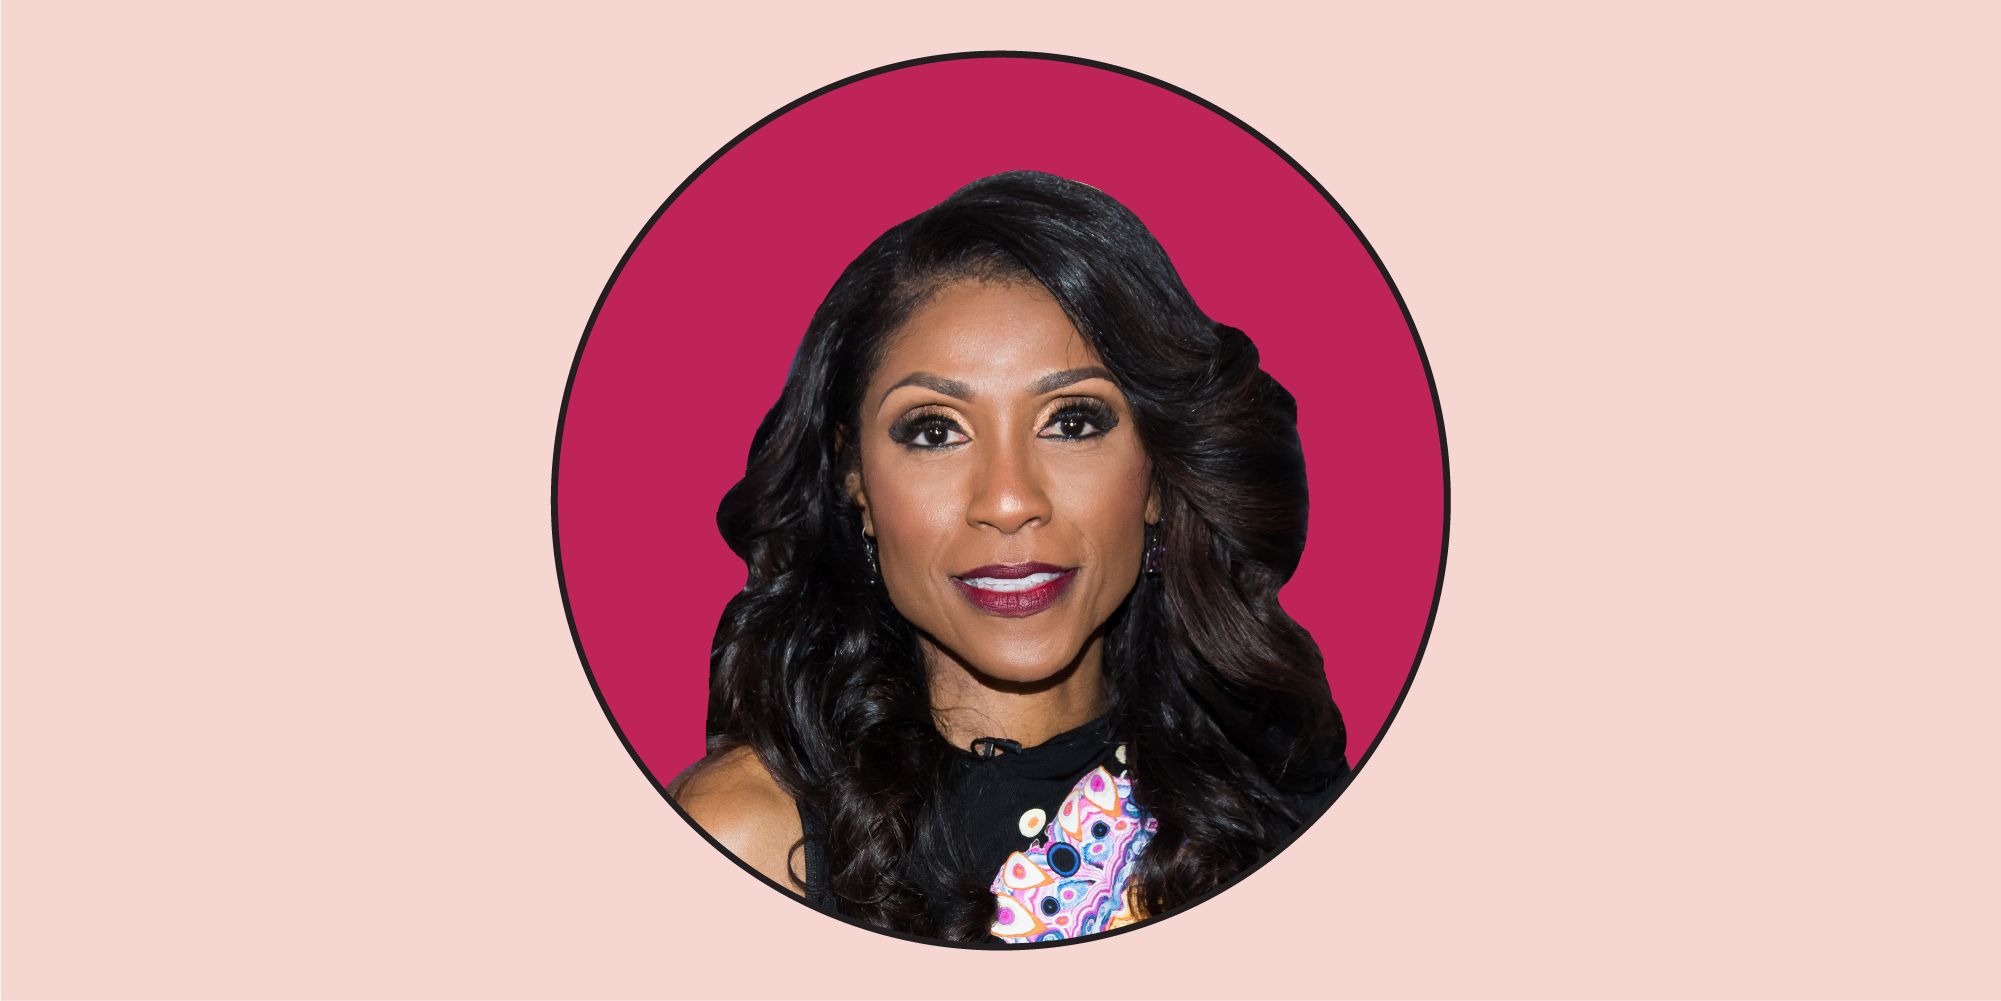 Married To Medicine's Dr. Jackie Opens up About Her Infertility Struggles